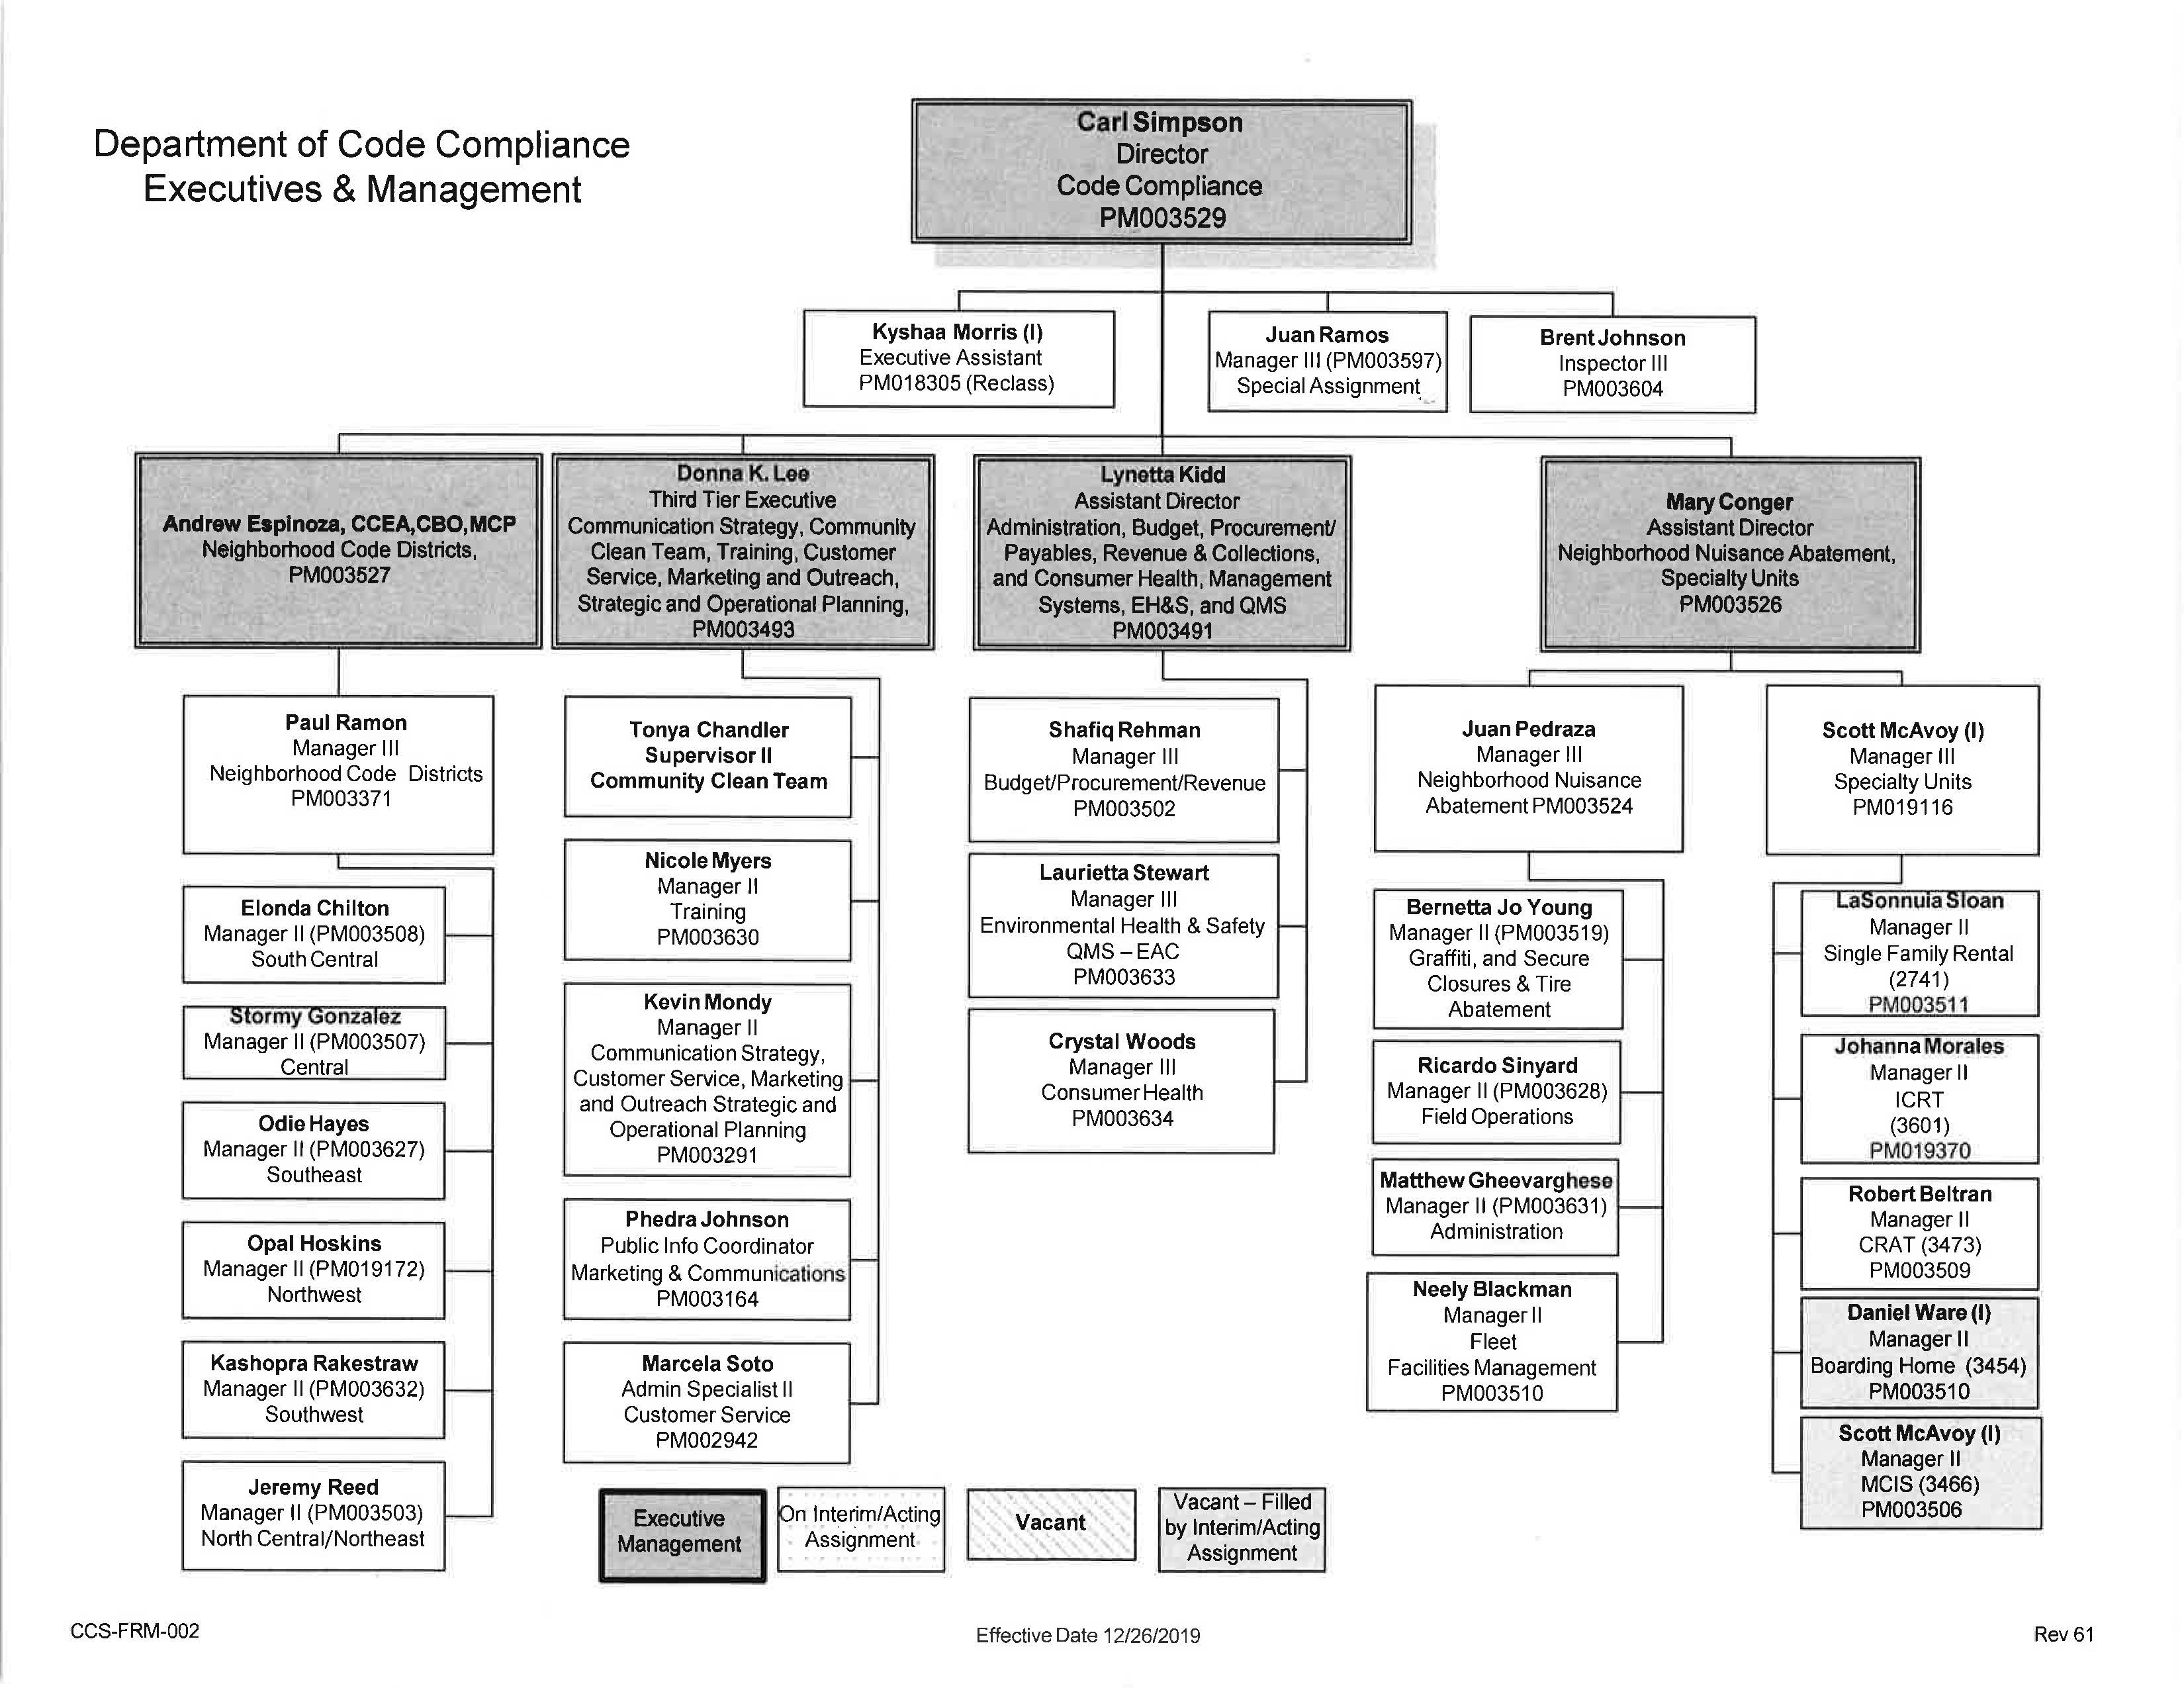 Department of Code Services Organizational Chart.jpg